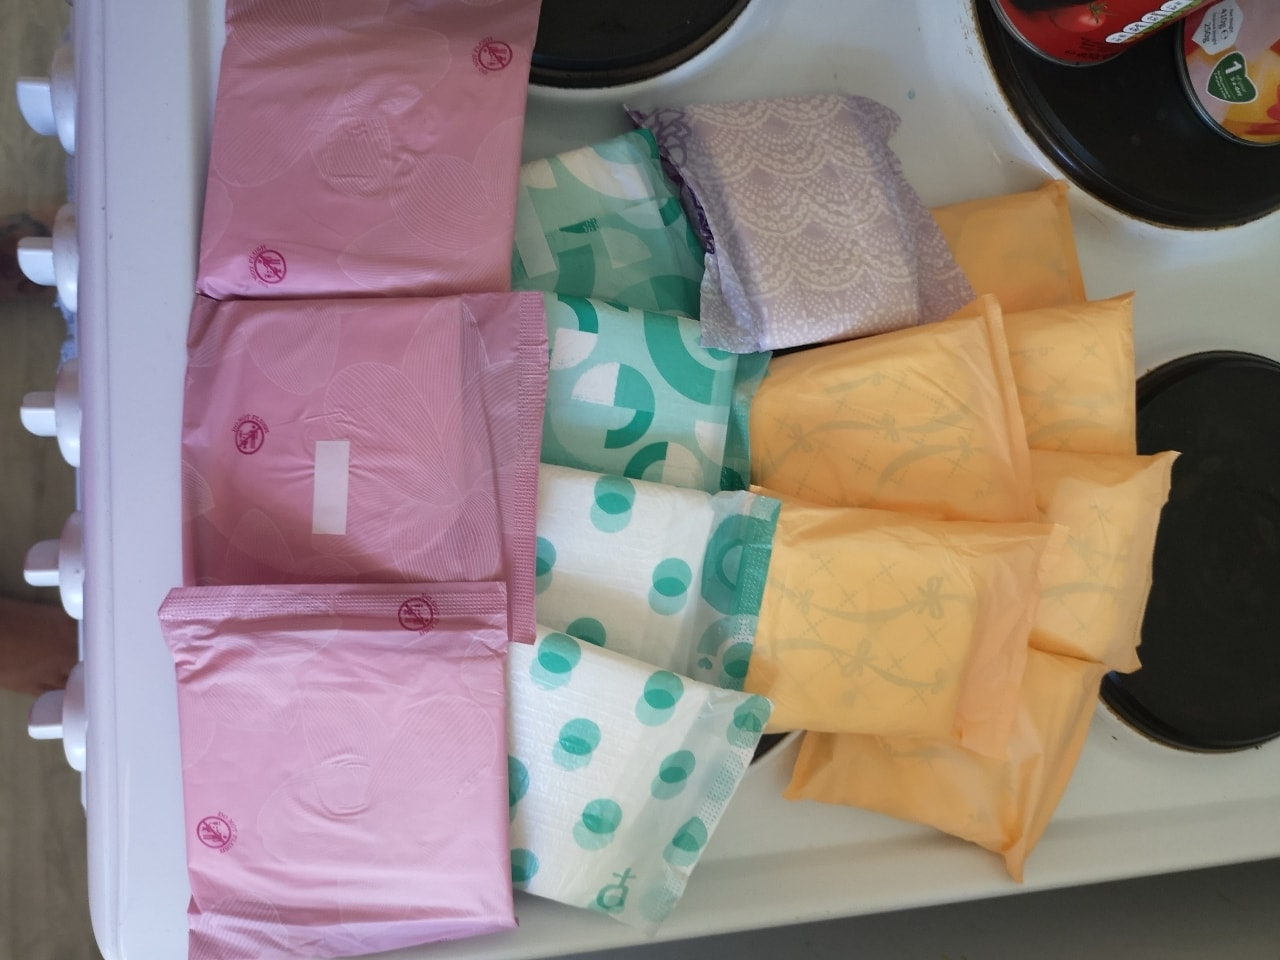 14x various sanitary towels, all sealed